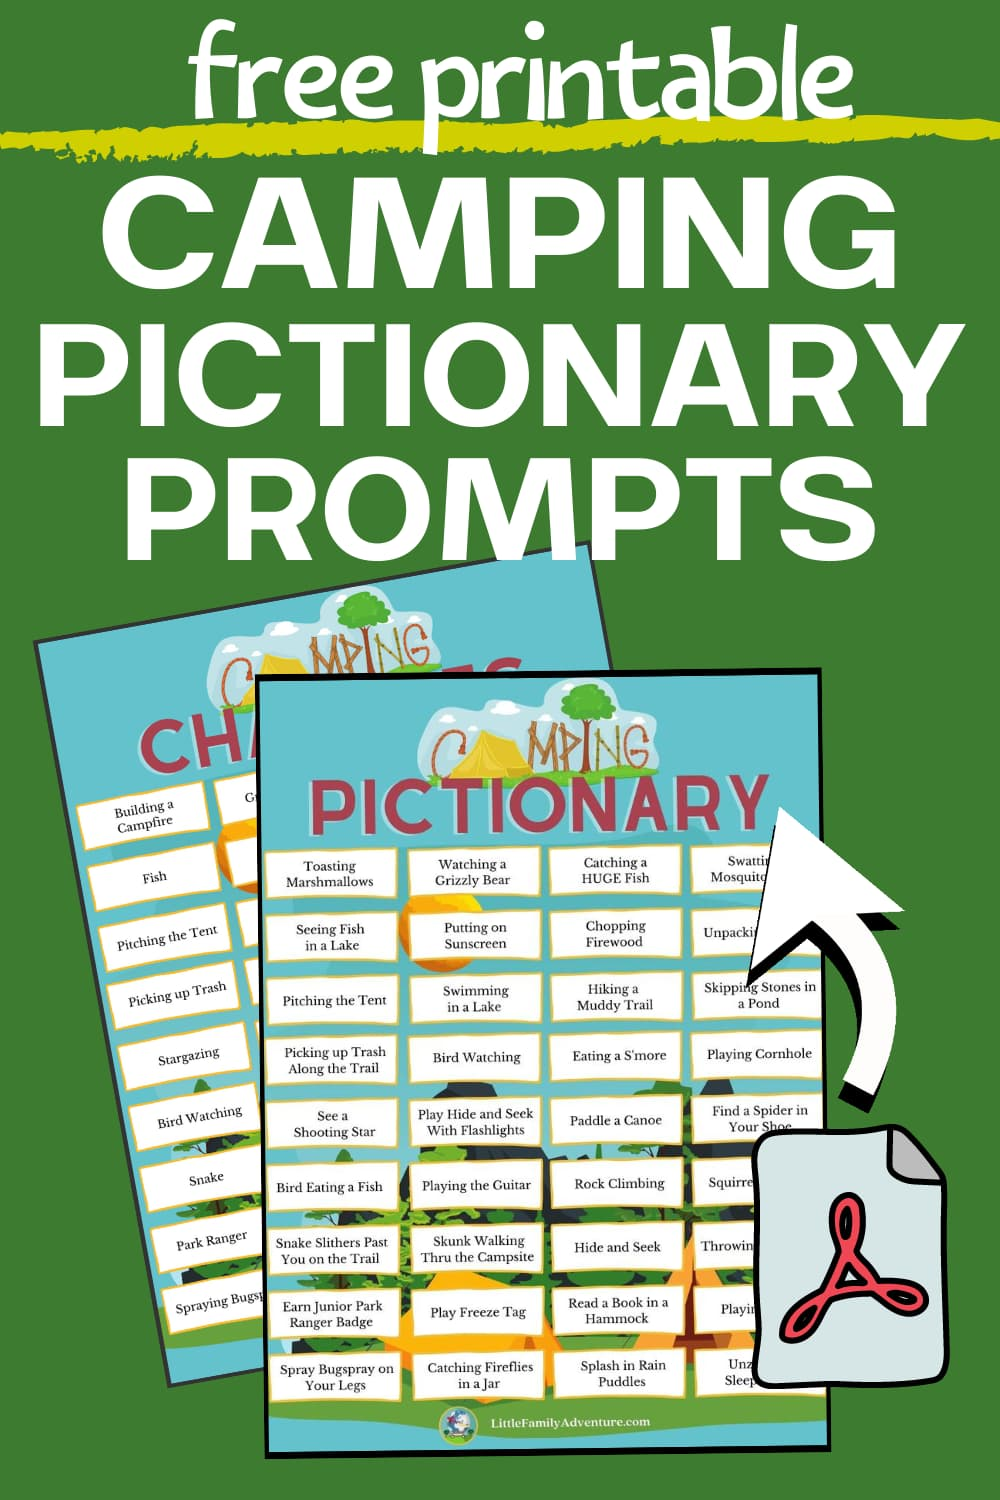 camping themed pictionary prompts printable